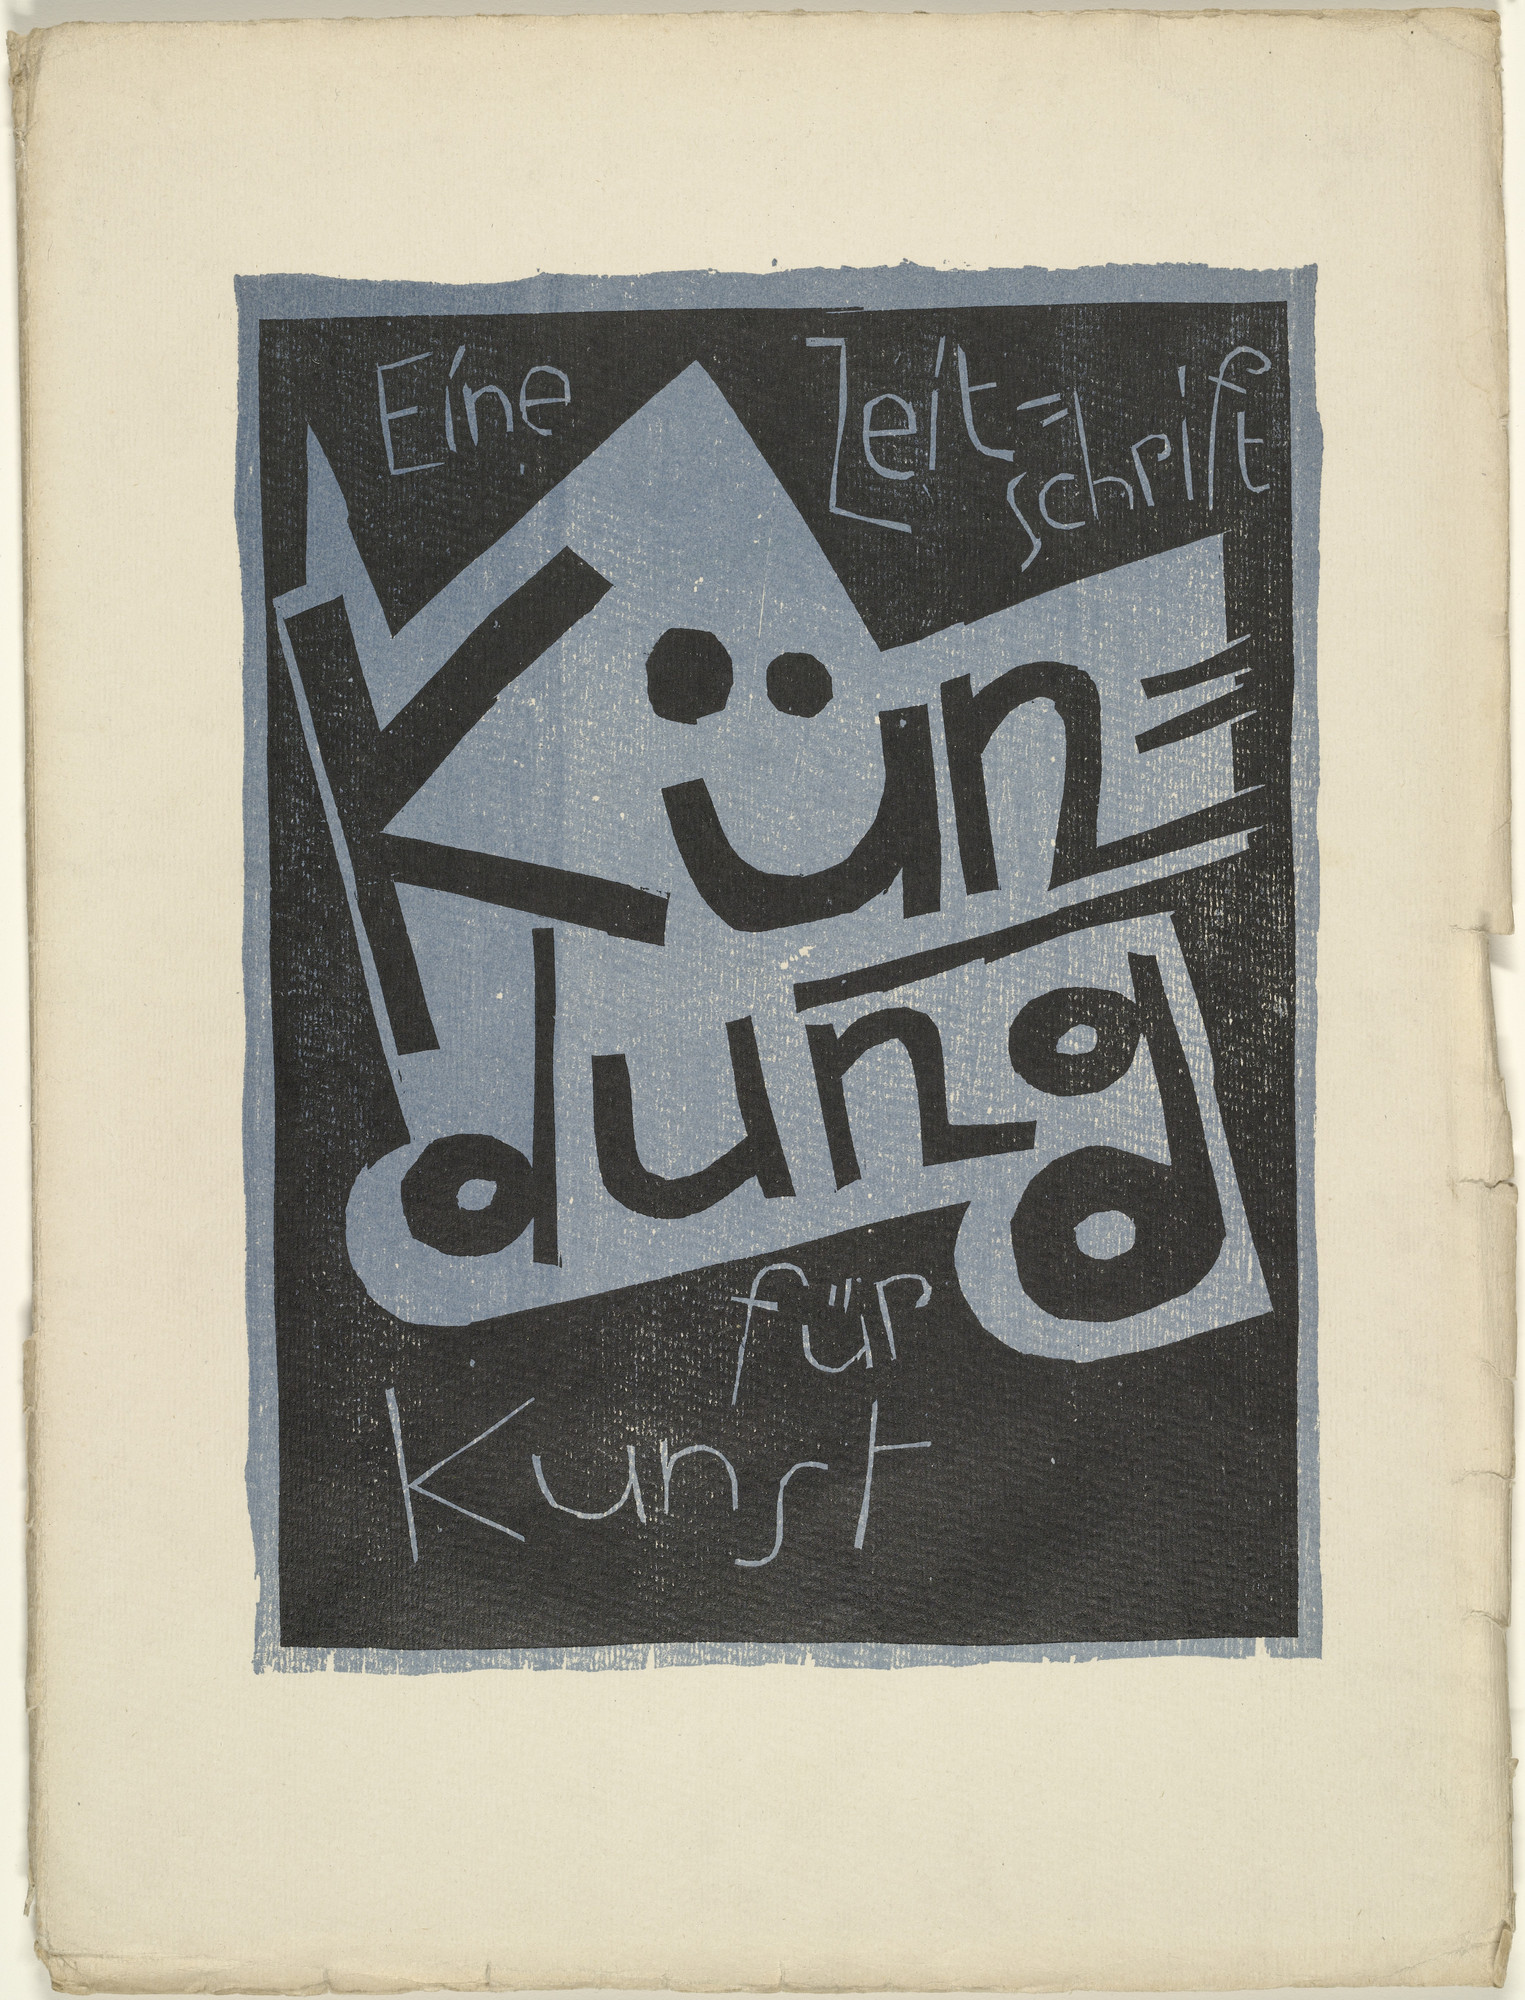 Karl Schmidt-Rottluff. Cover from the periodical Kündung, vol. 1, no. 4, 5, 6 (April, May, June 1921). 1921 (executed 1920)